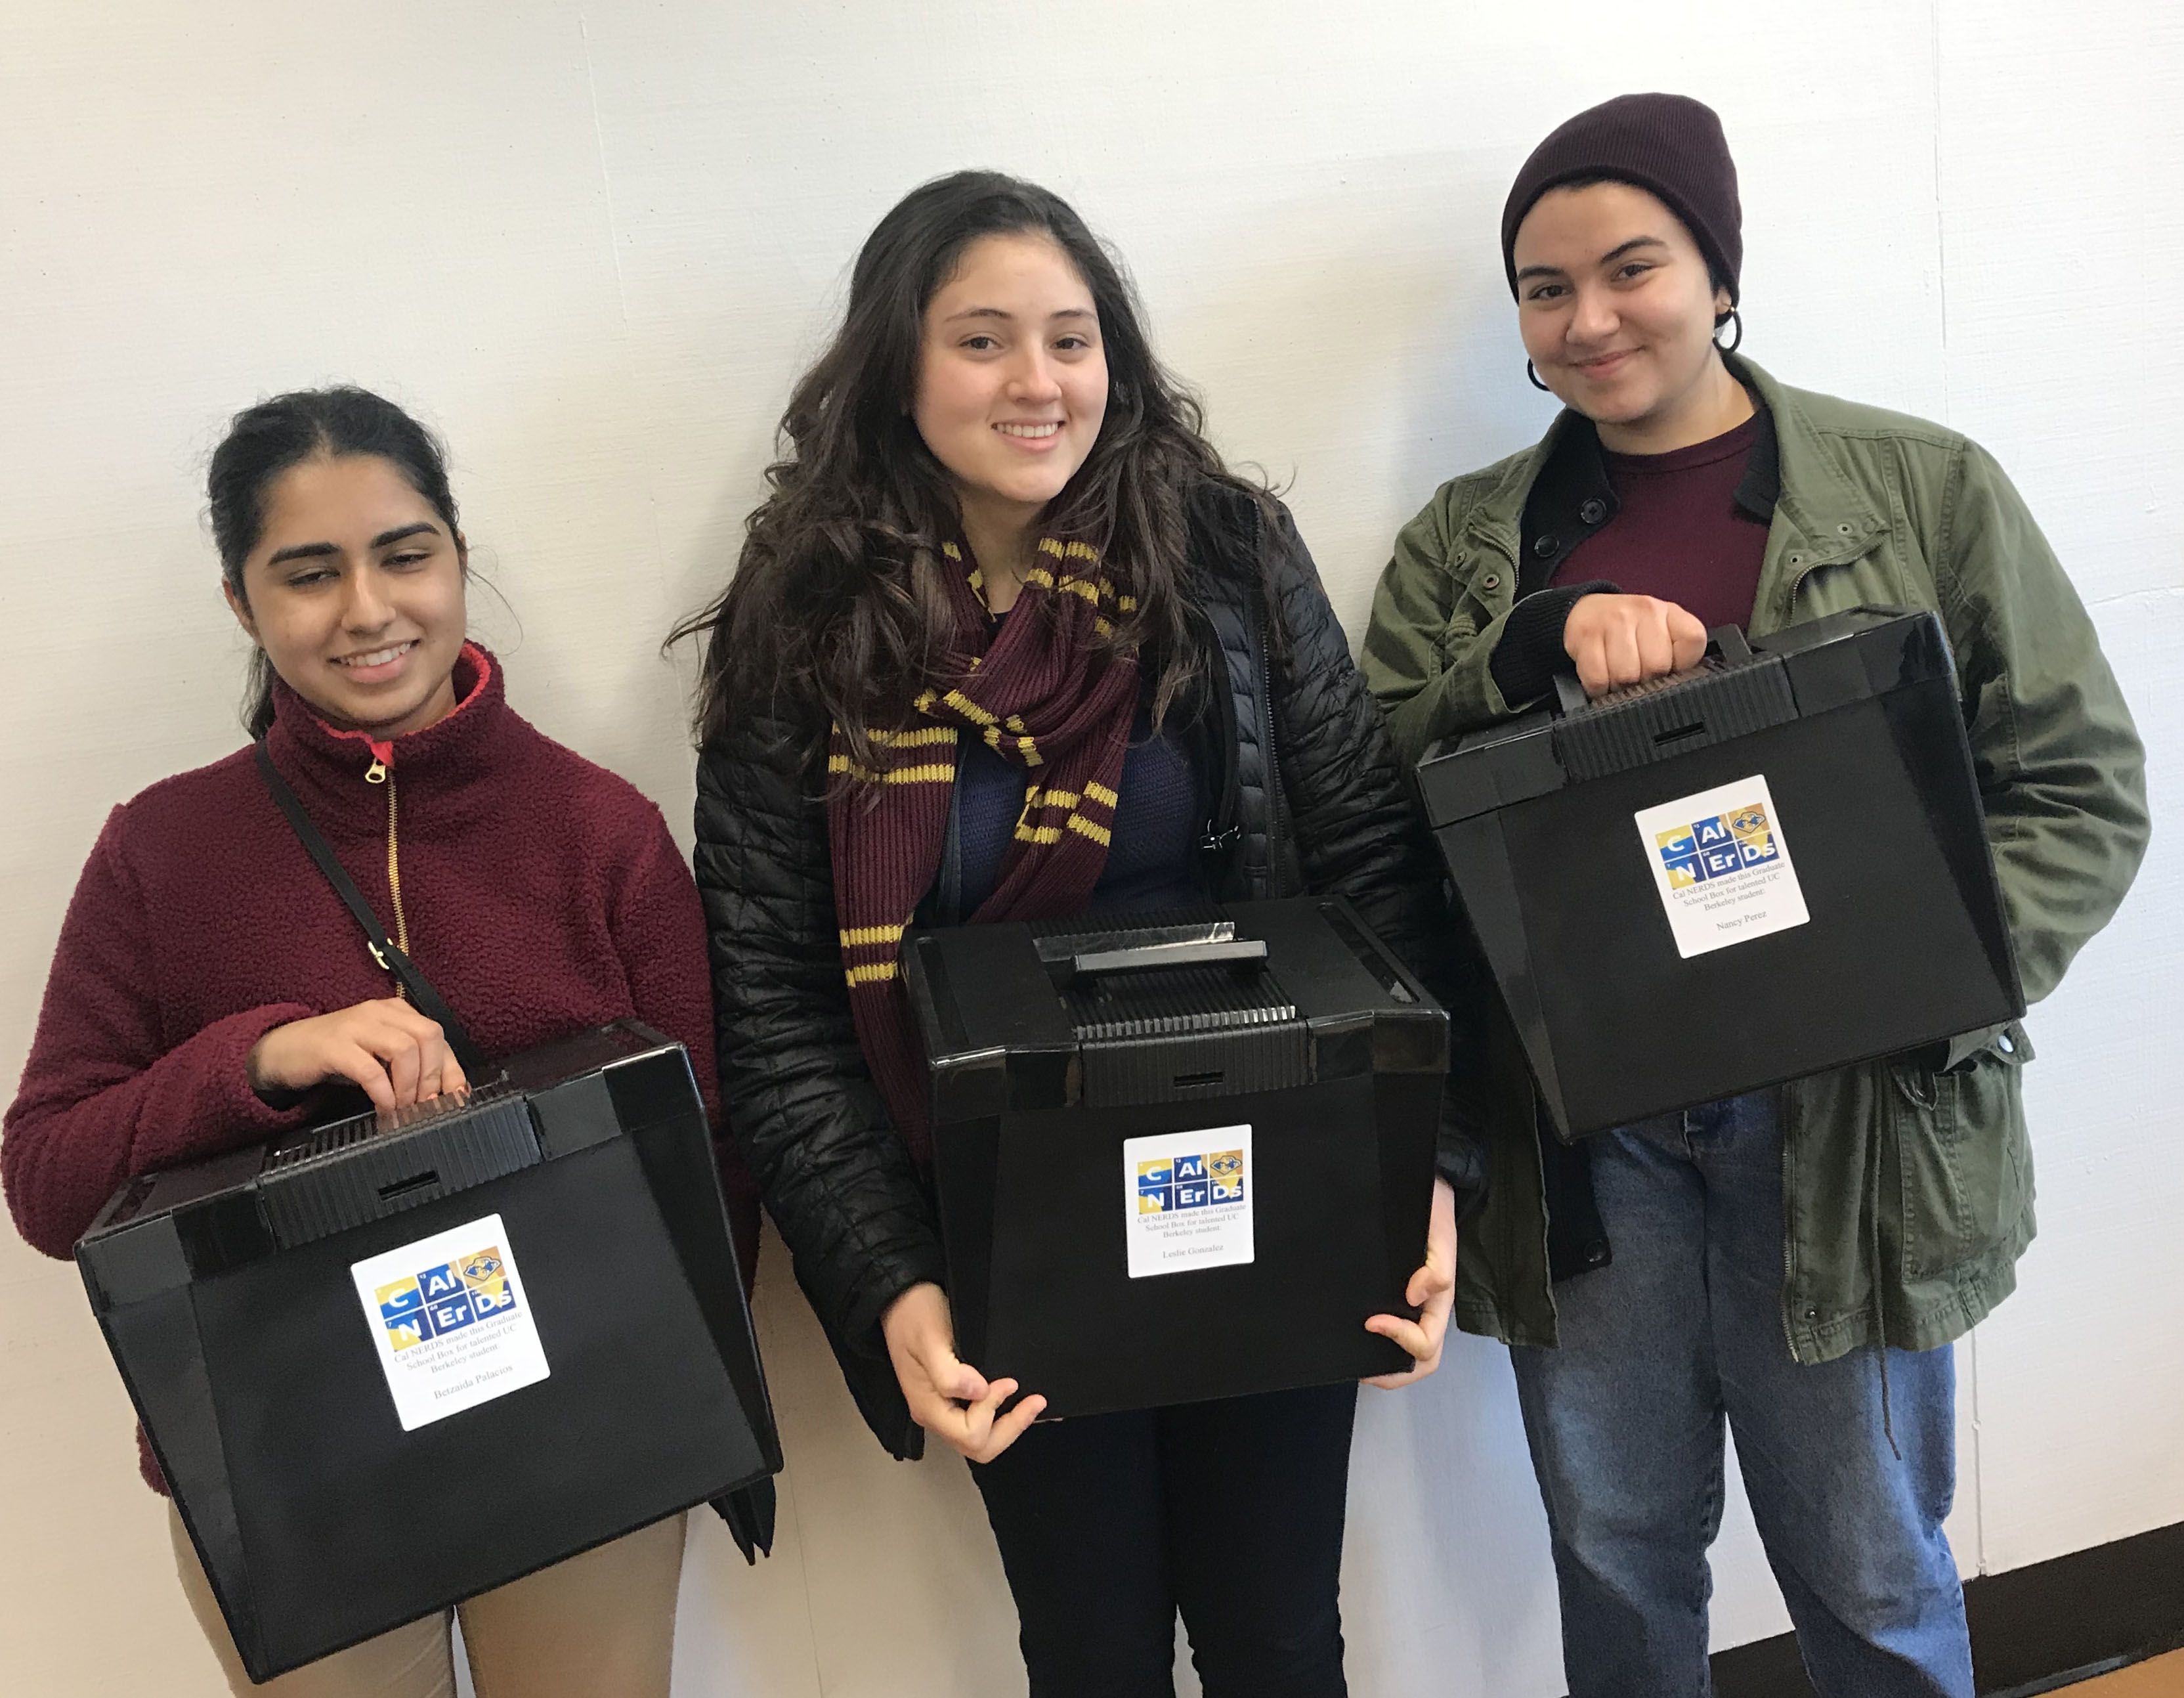 Student Directors help build Grad School Toolboxes for our community